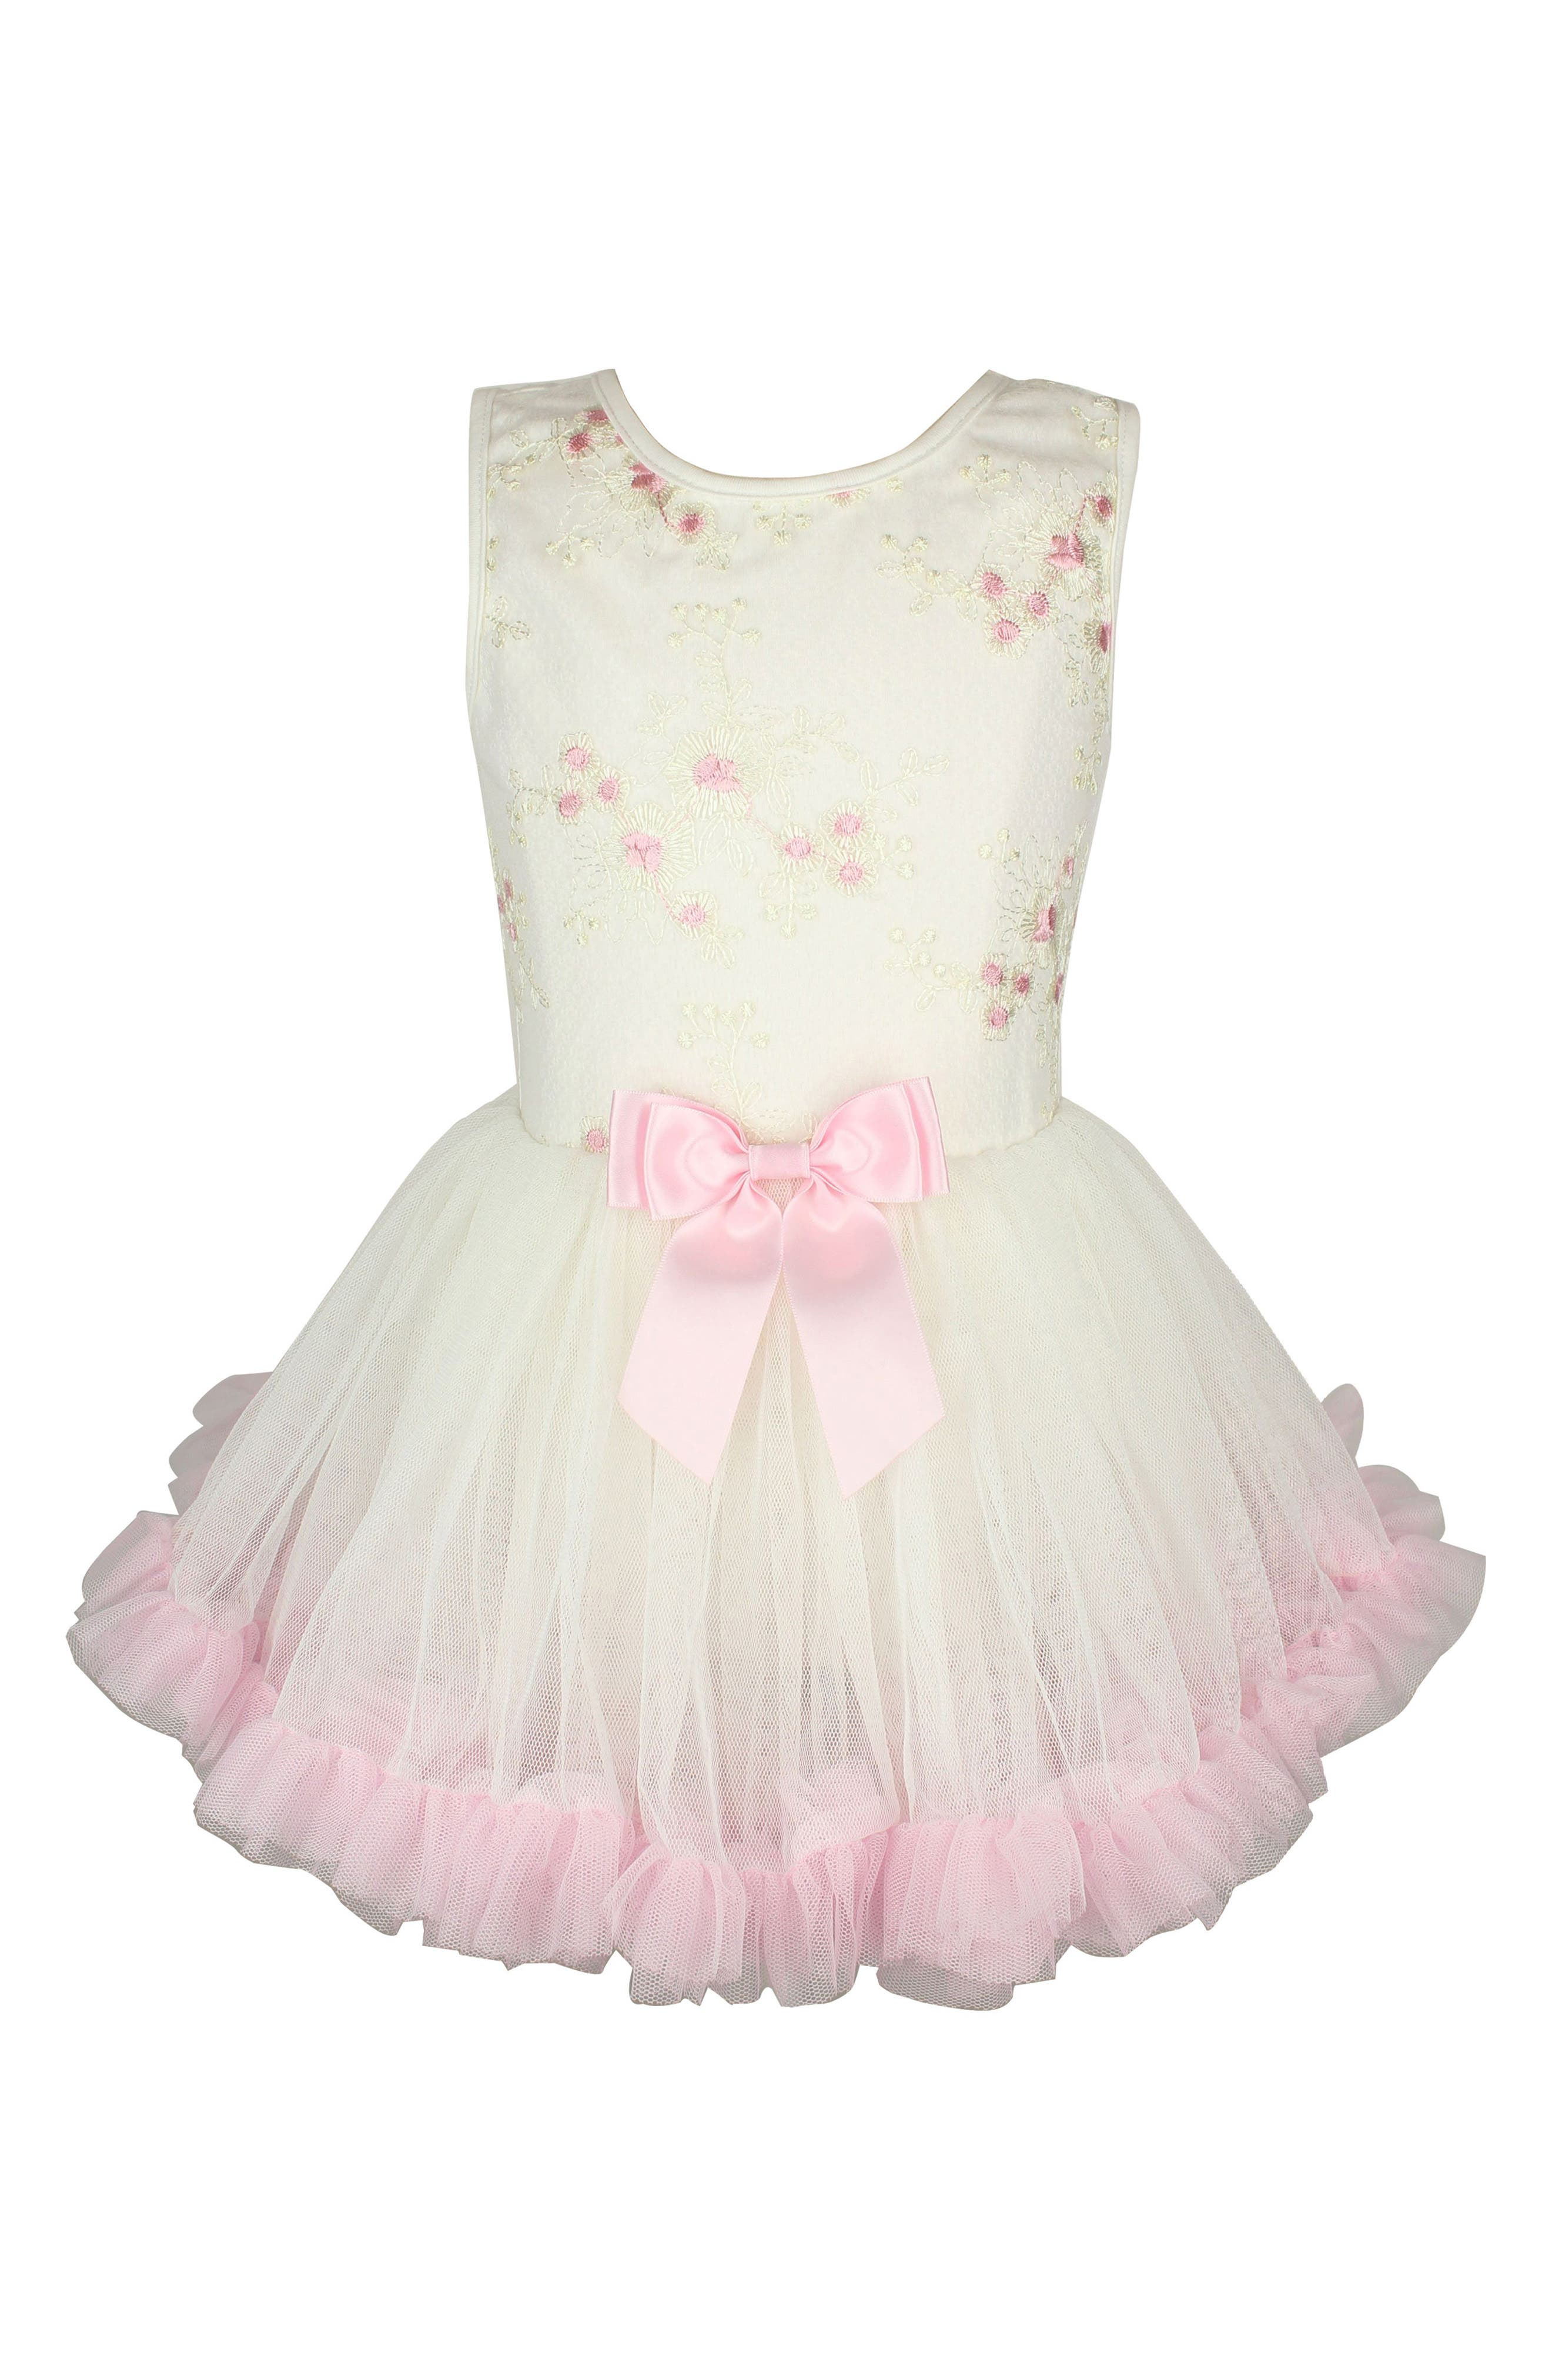 Embroidered Flower Pettidress,                         Main,                         color, White